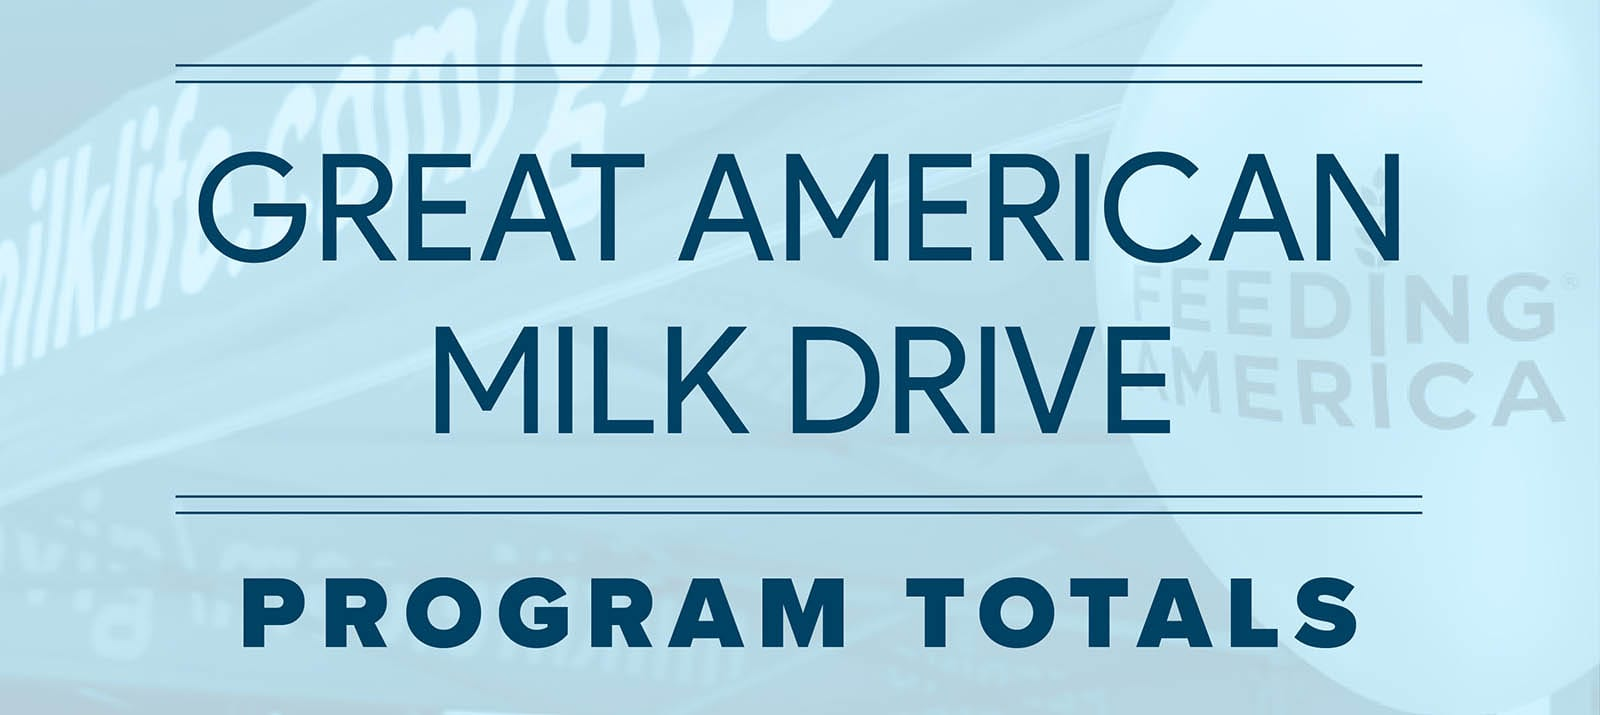 The 2021 Great American Milk Drive has ended!